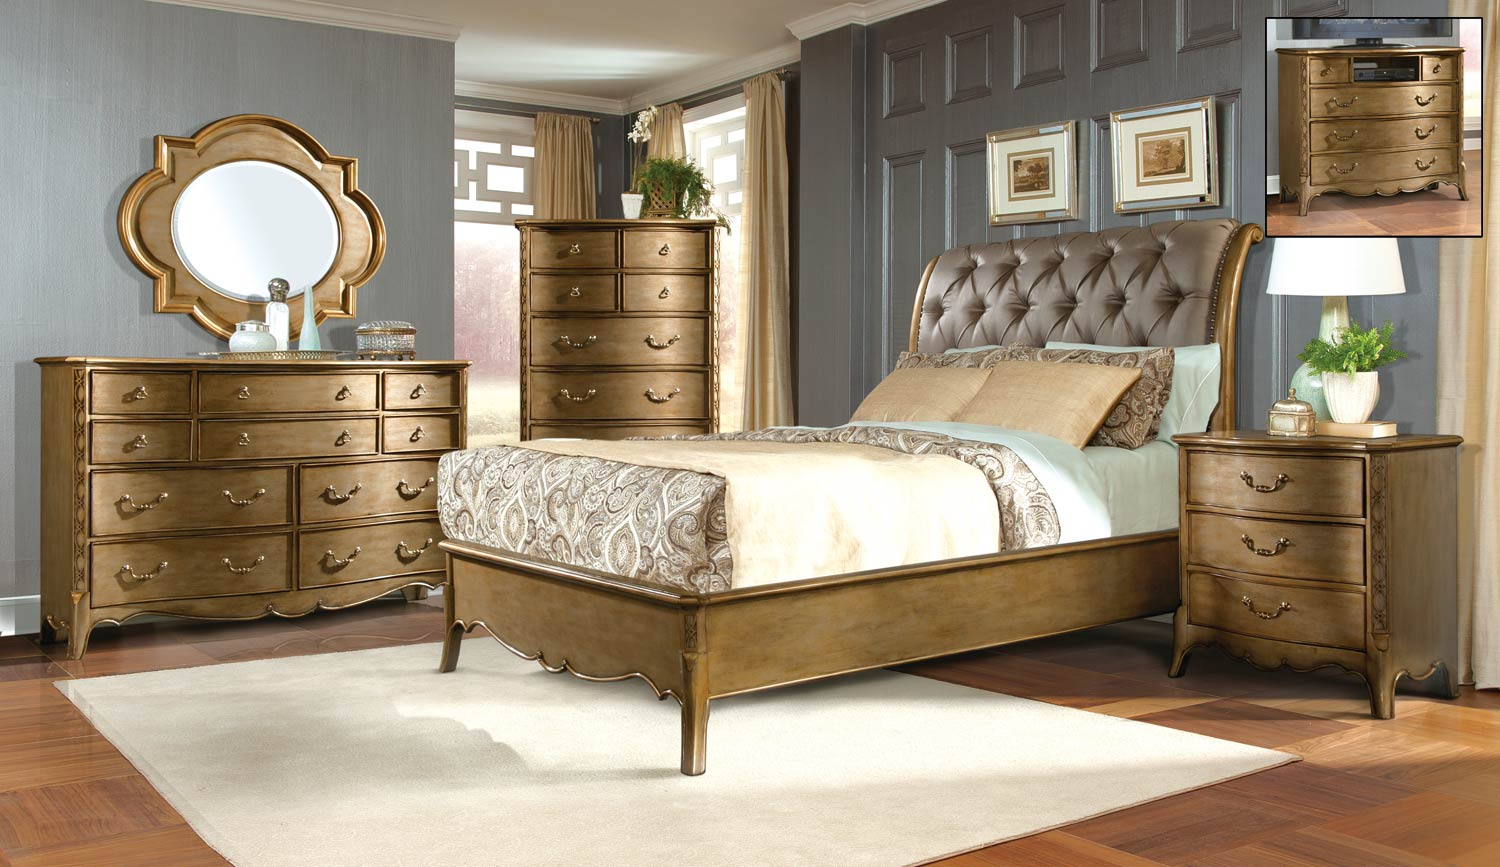 Homelegance Chambord Bedroom Set - Champagne Gold